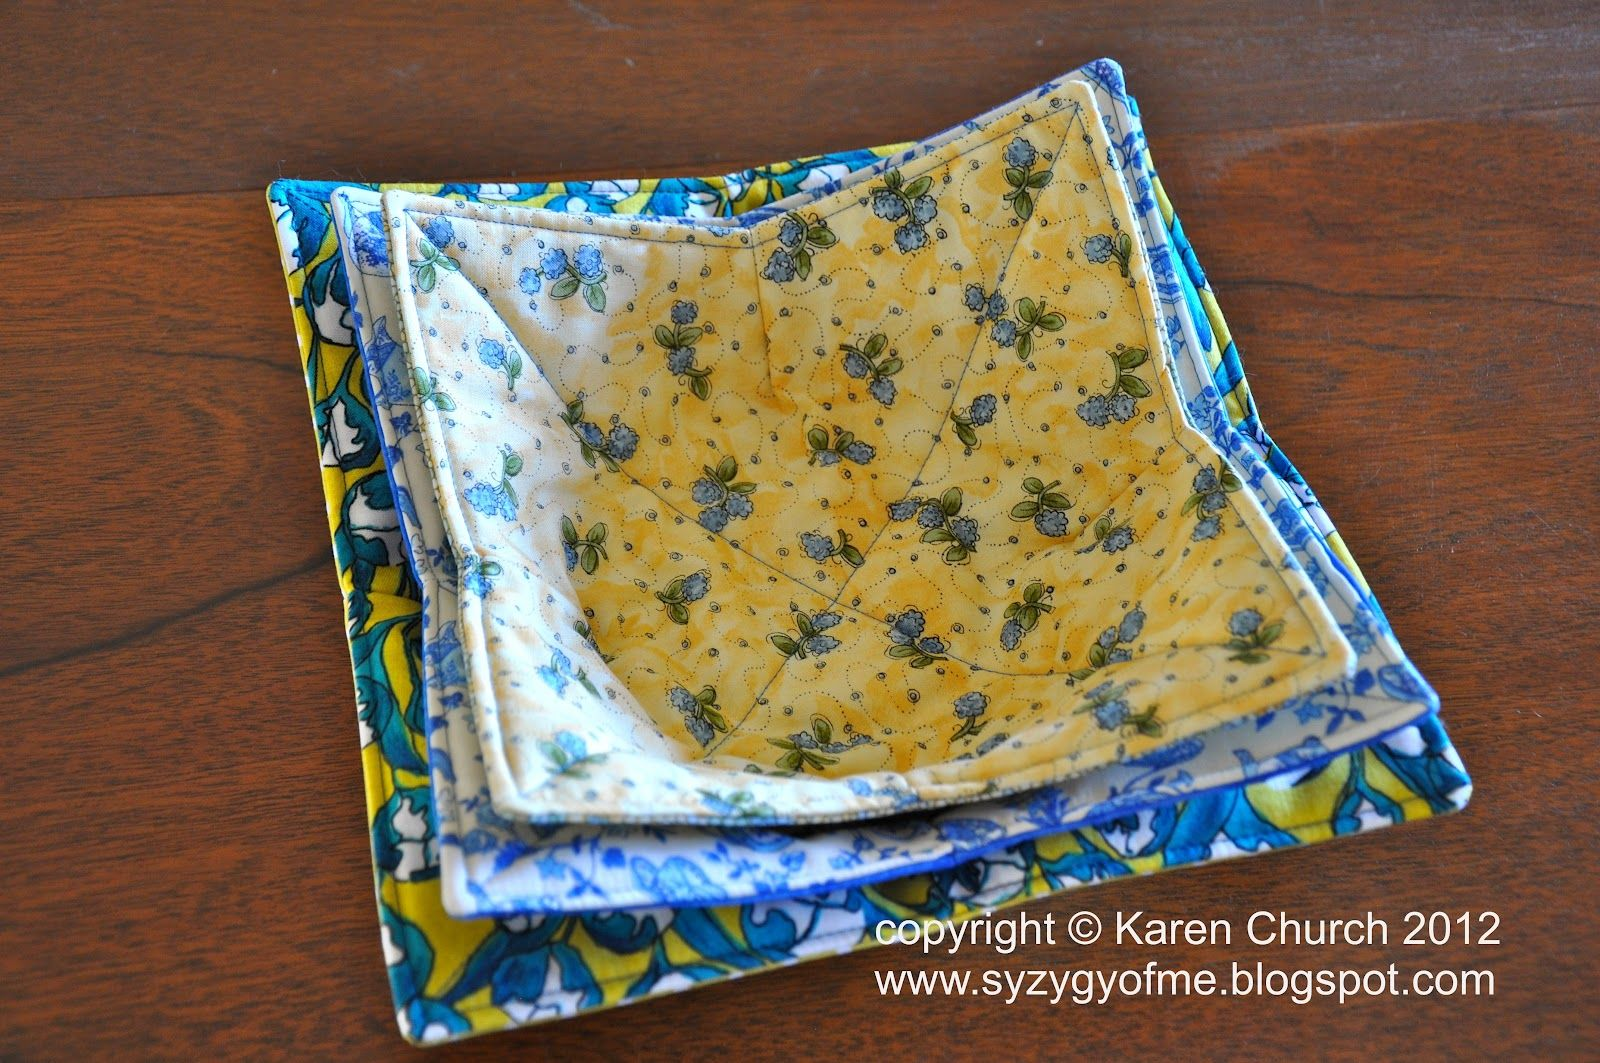 Microwave Bowl Holder Free Pattern Hope You All Enjoy This Quick And Fun Little Sewing Project